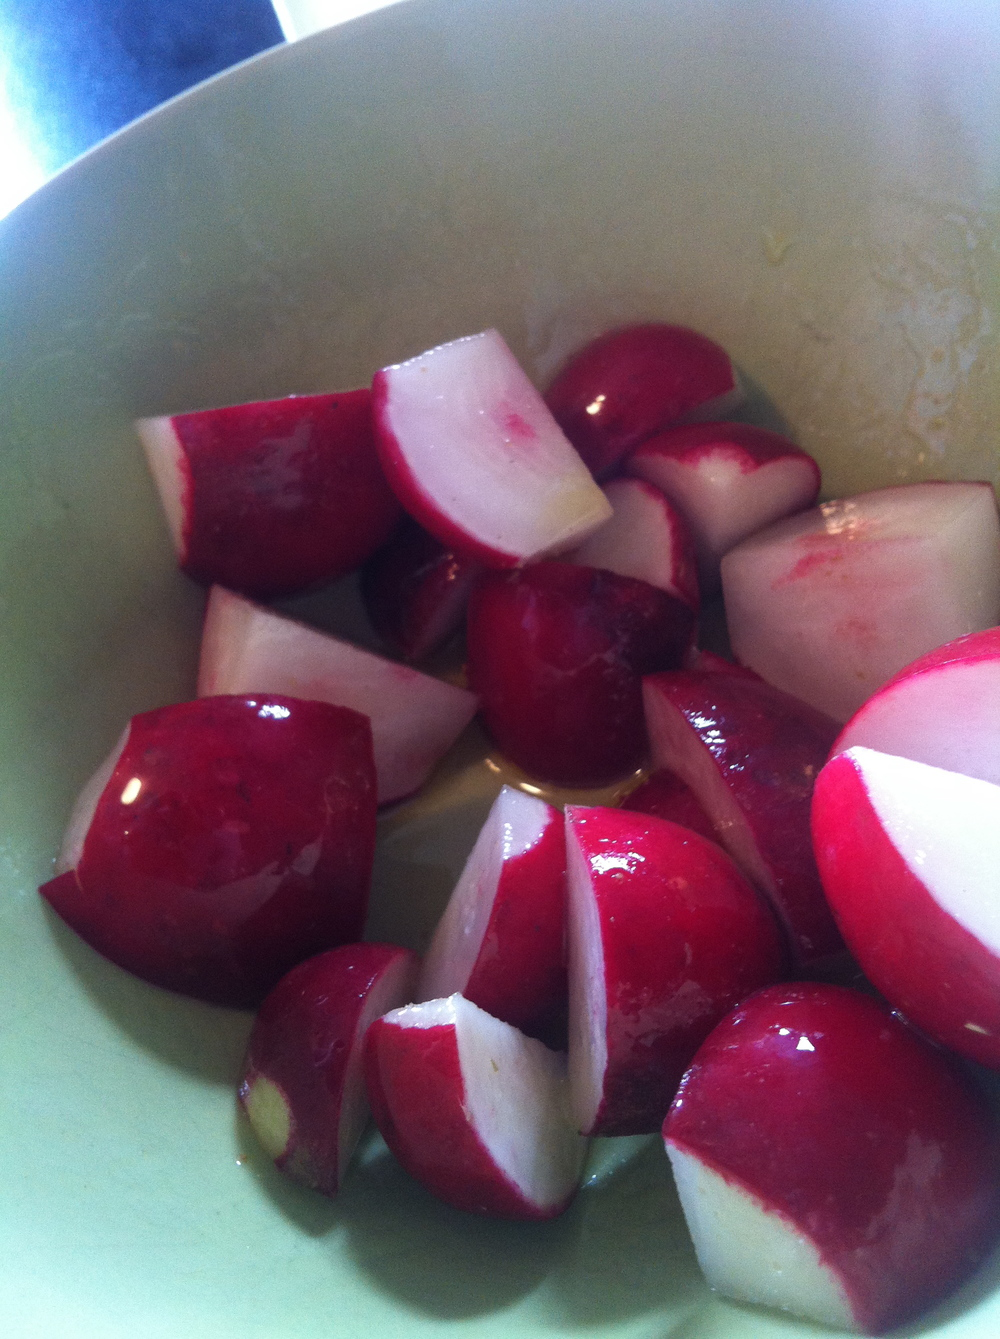 Radishes. Olive oil. Salt. Yum.